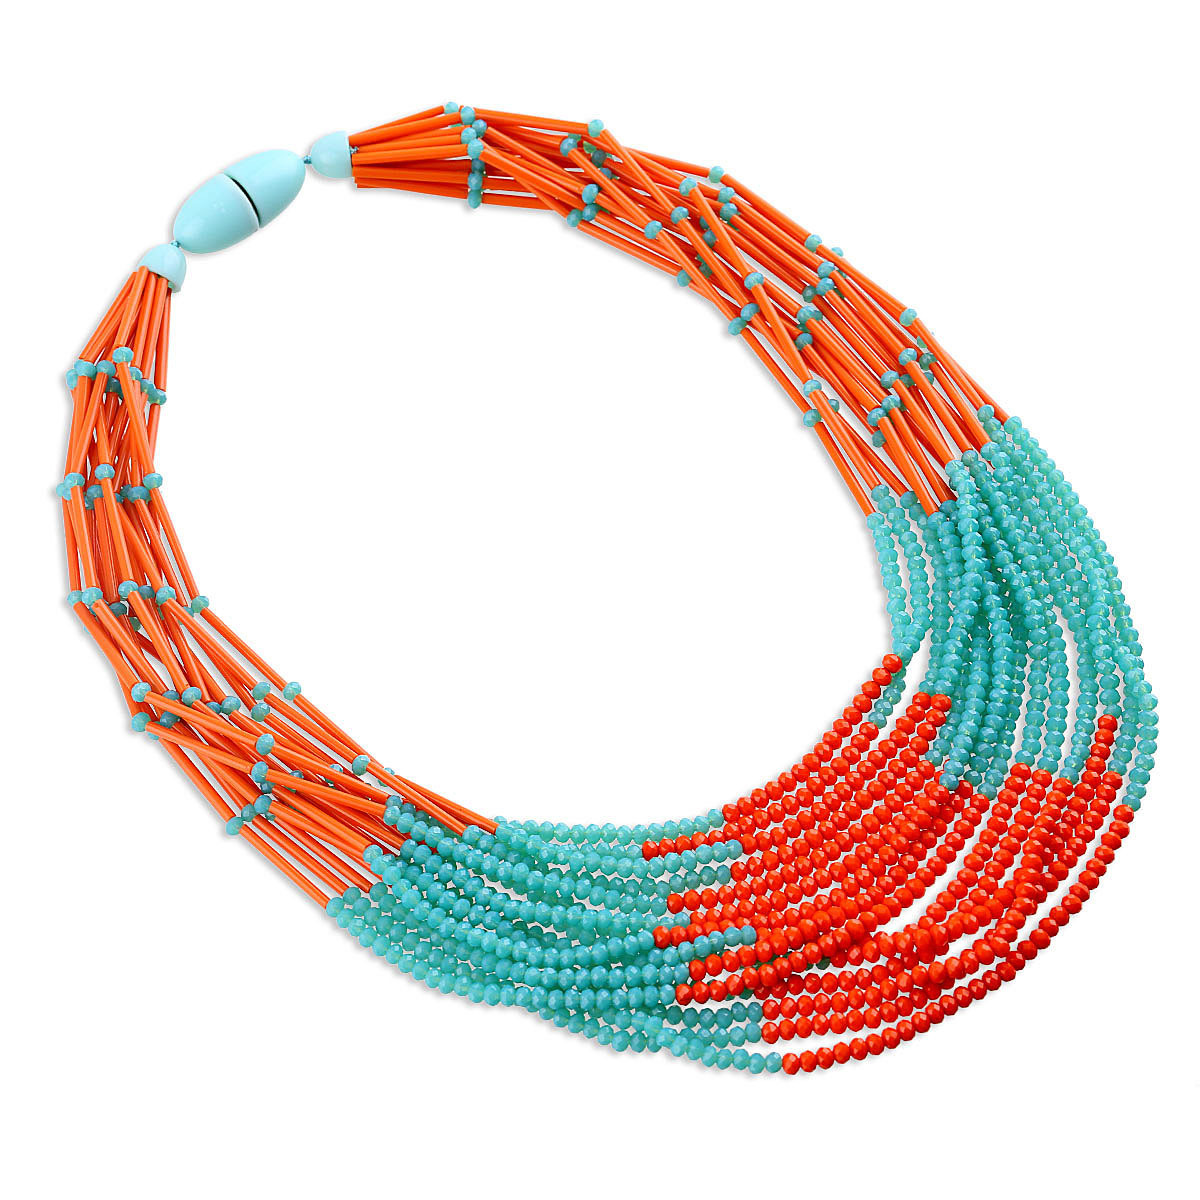 Occident and the United States Glassnecklace (Orange)NHKM2401